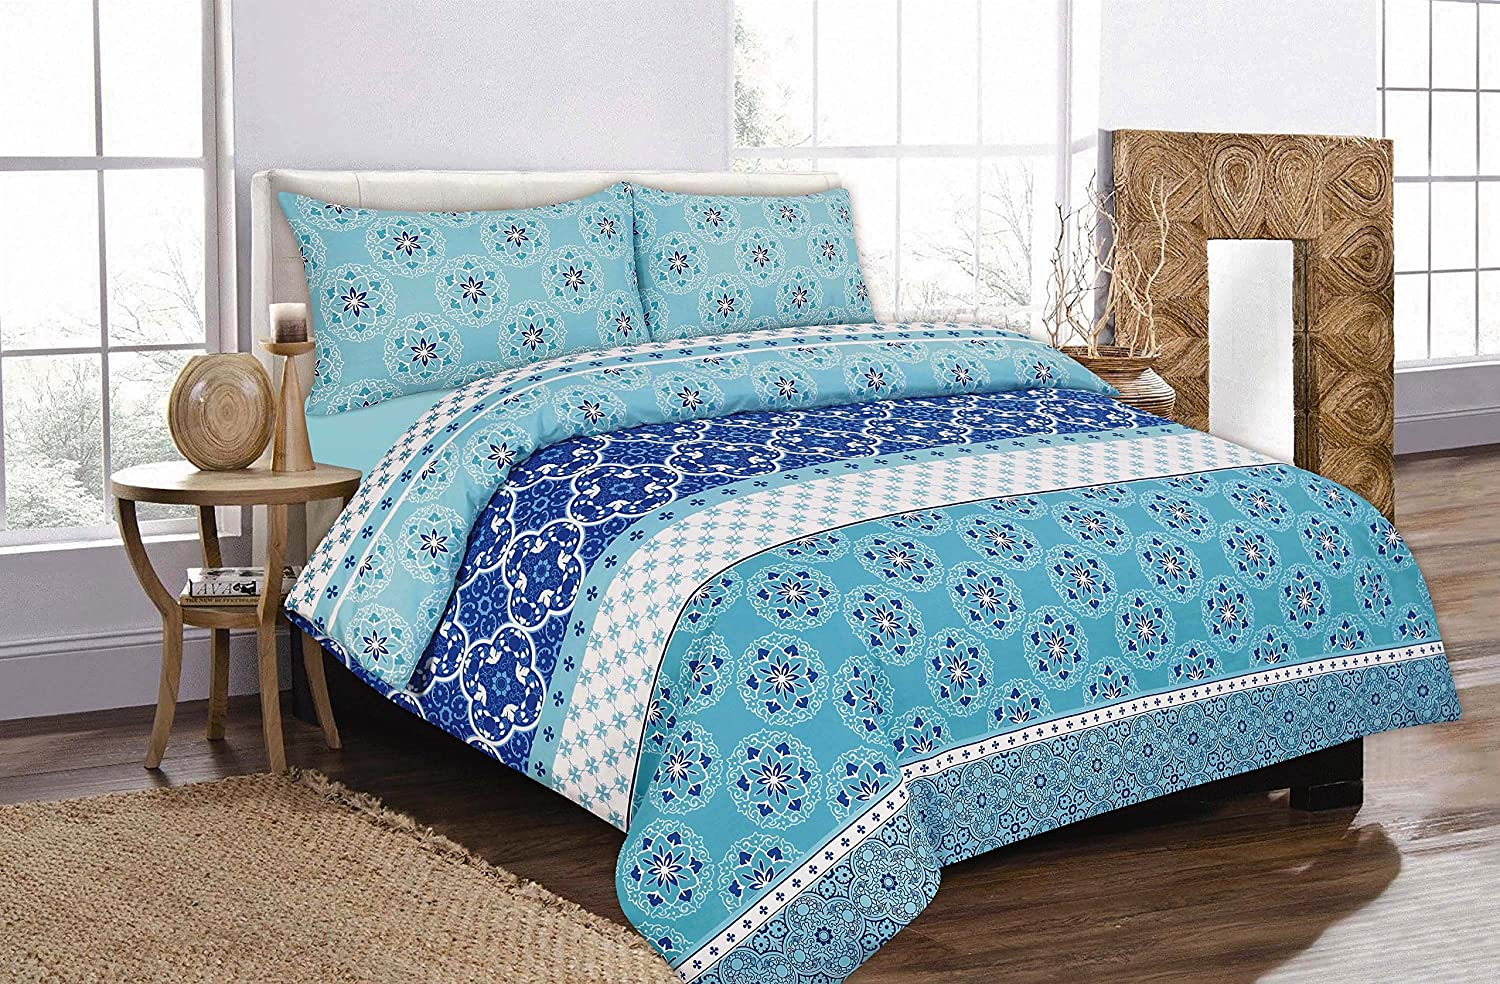 Teal Modern Duvet Cover Set with Pillow Case Quilt Cover Set Single Double King